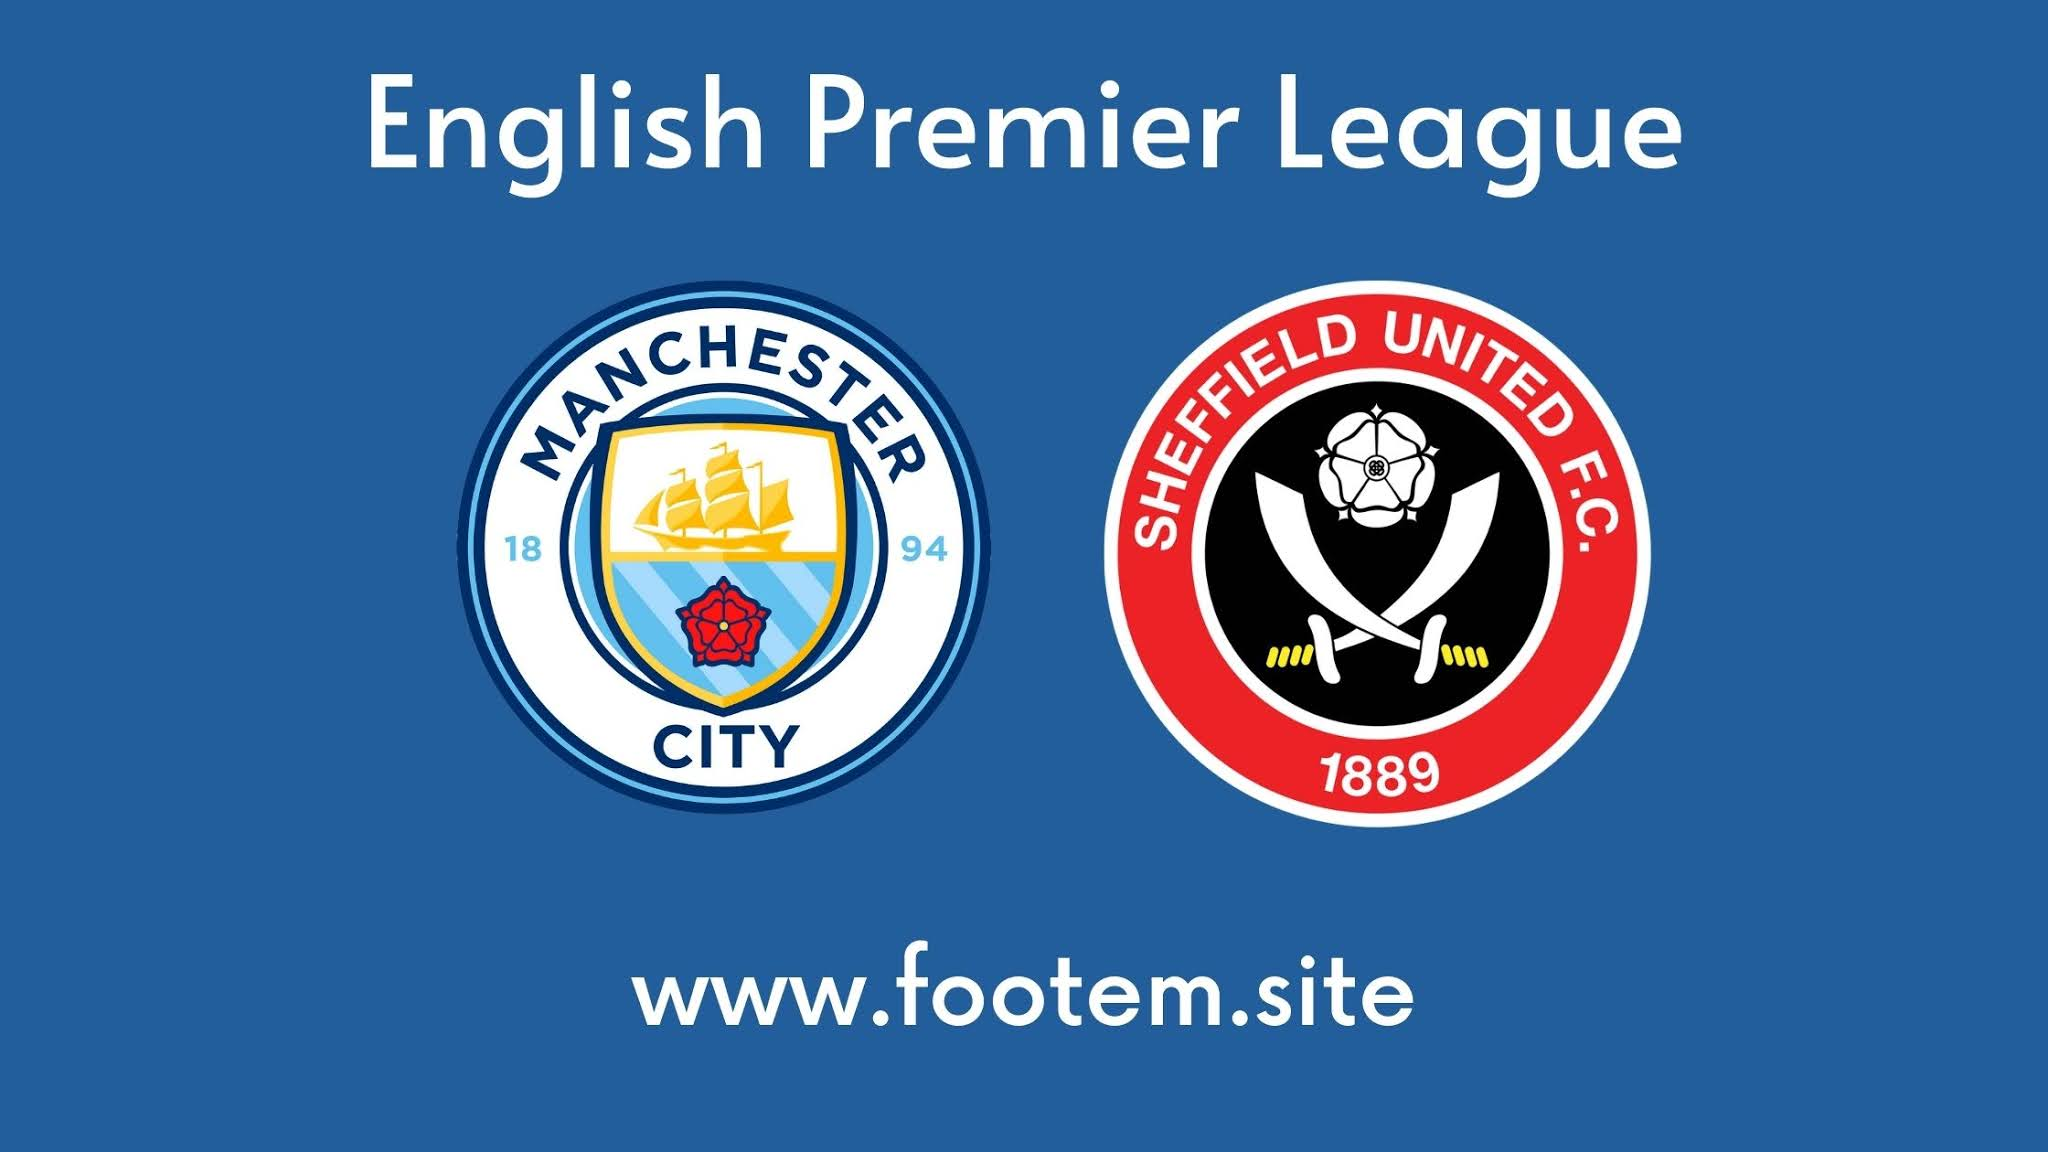 Manchester City and Sheffield United footem 7 site